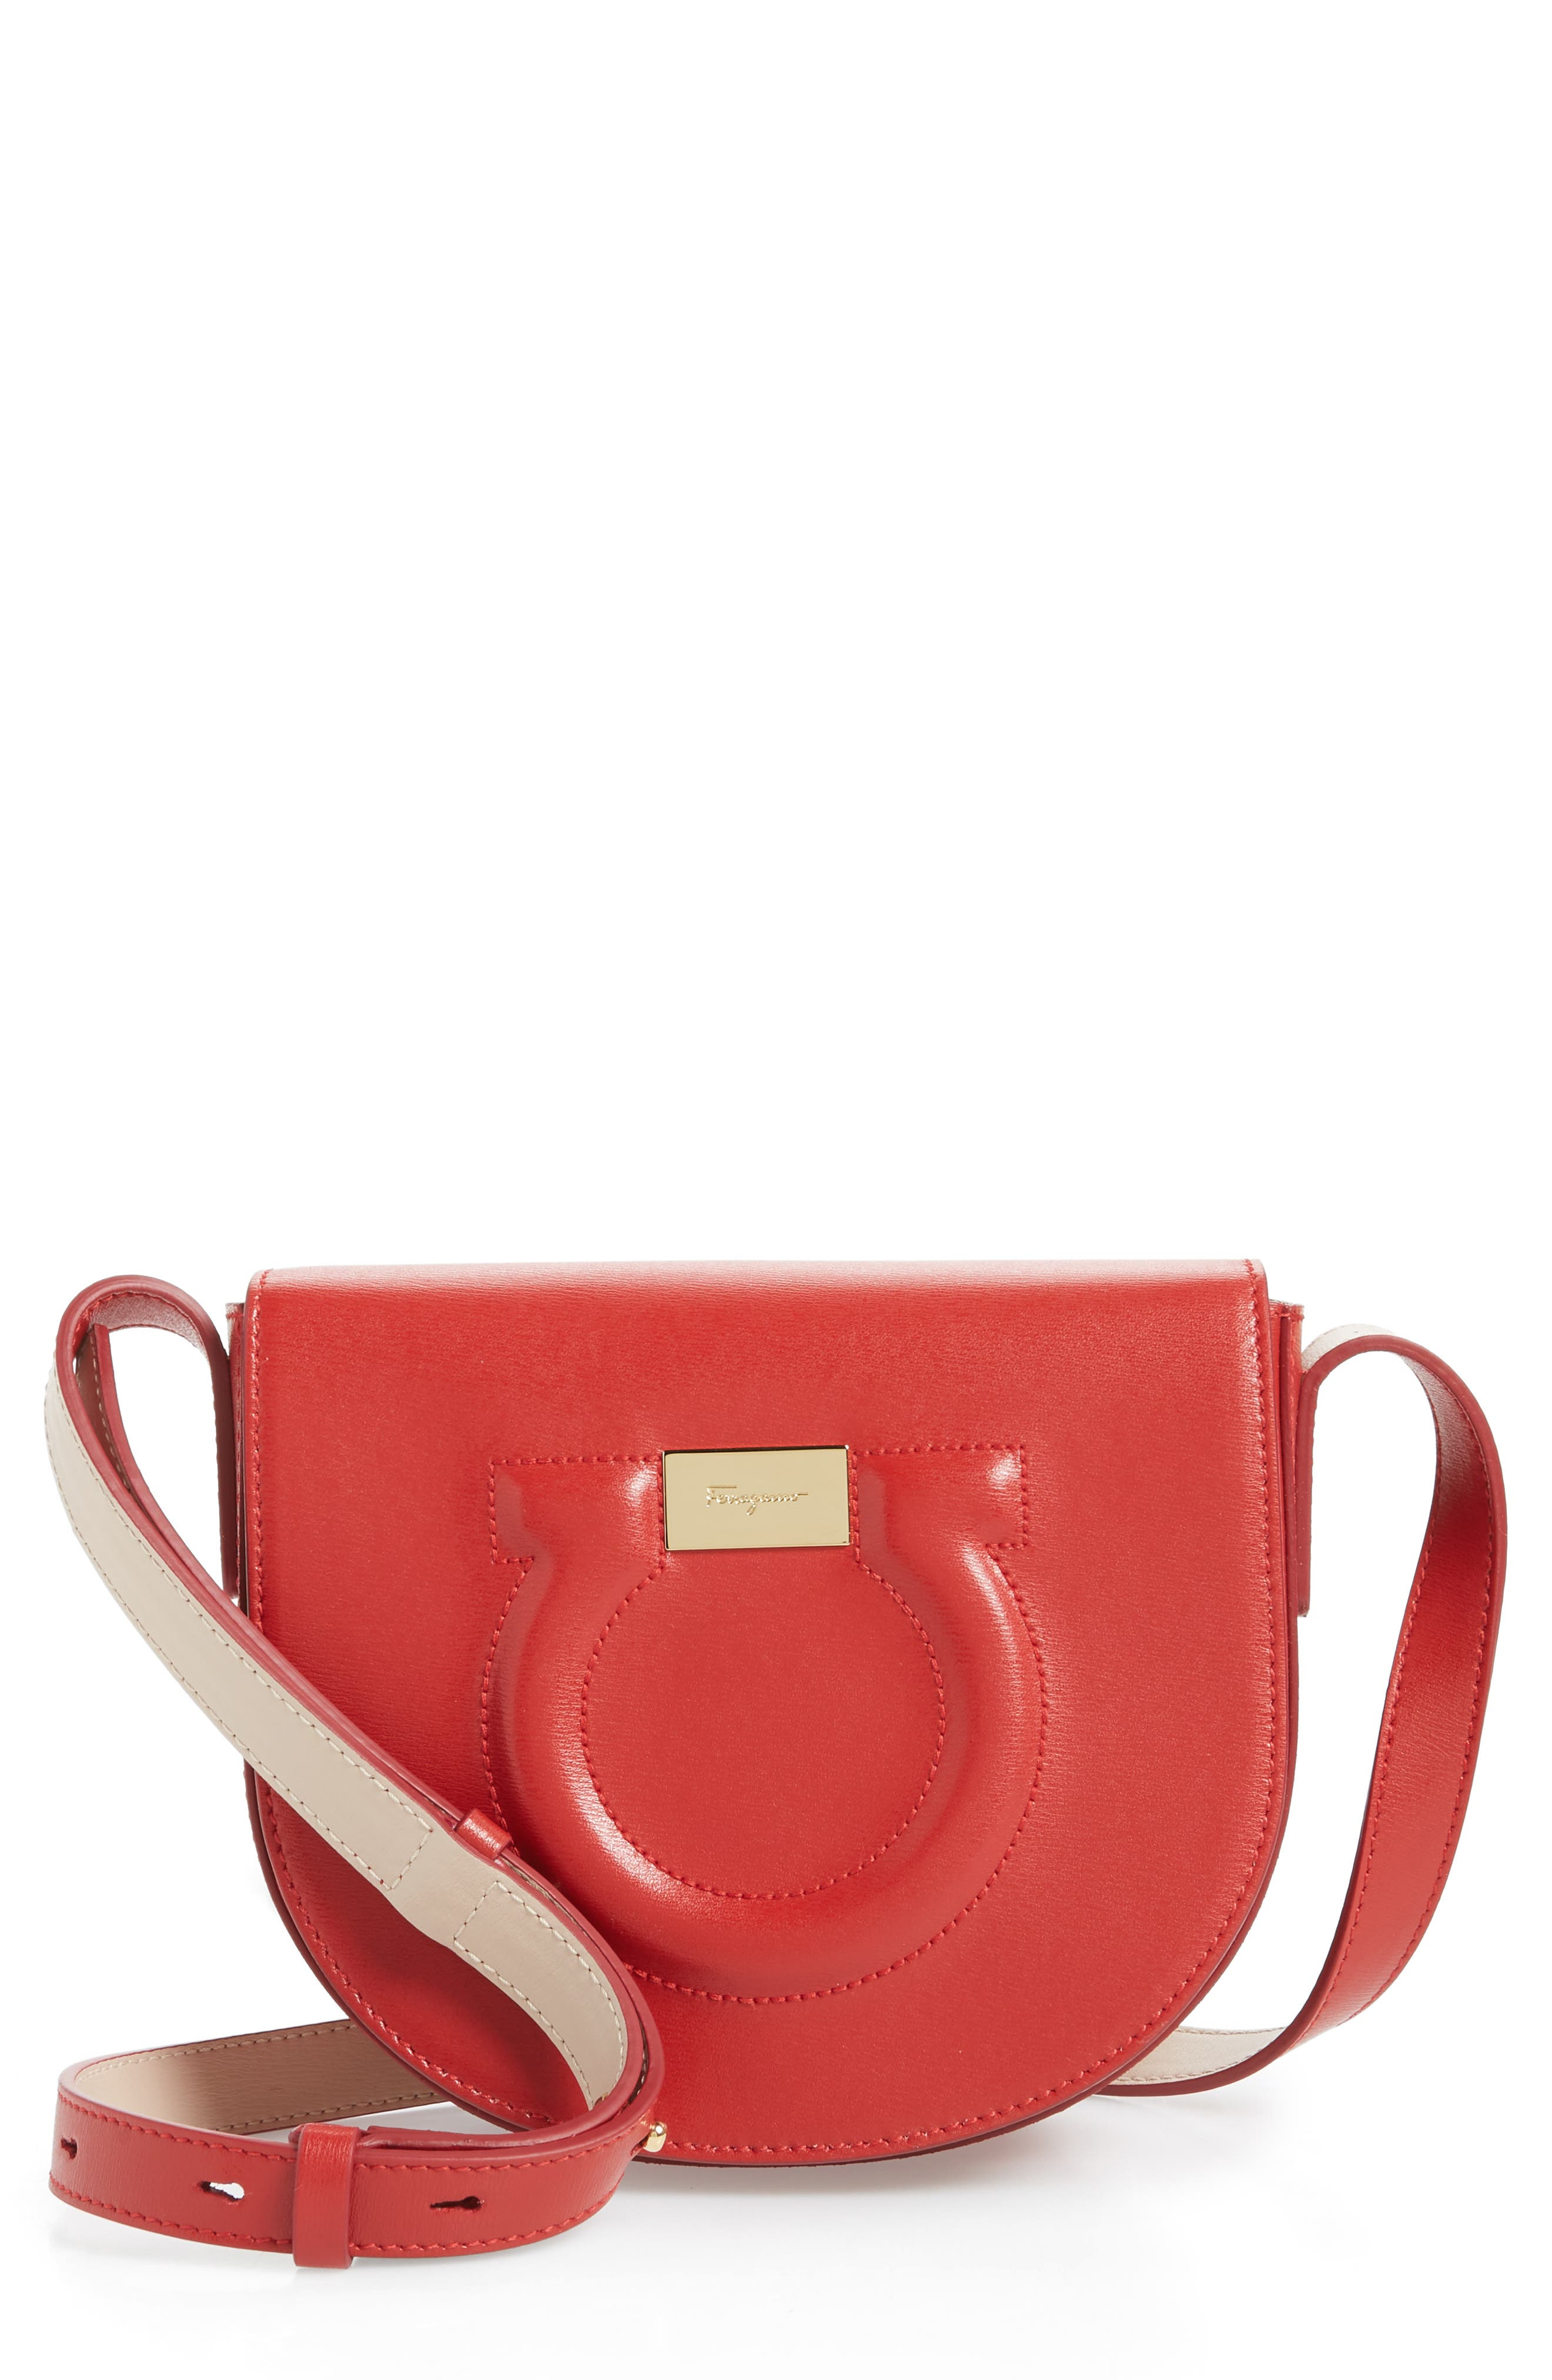 Quilted Gancio Crossbody Bag, Main, color, LIPSTICK RED